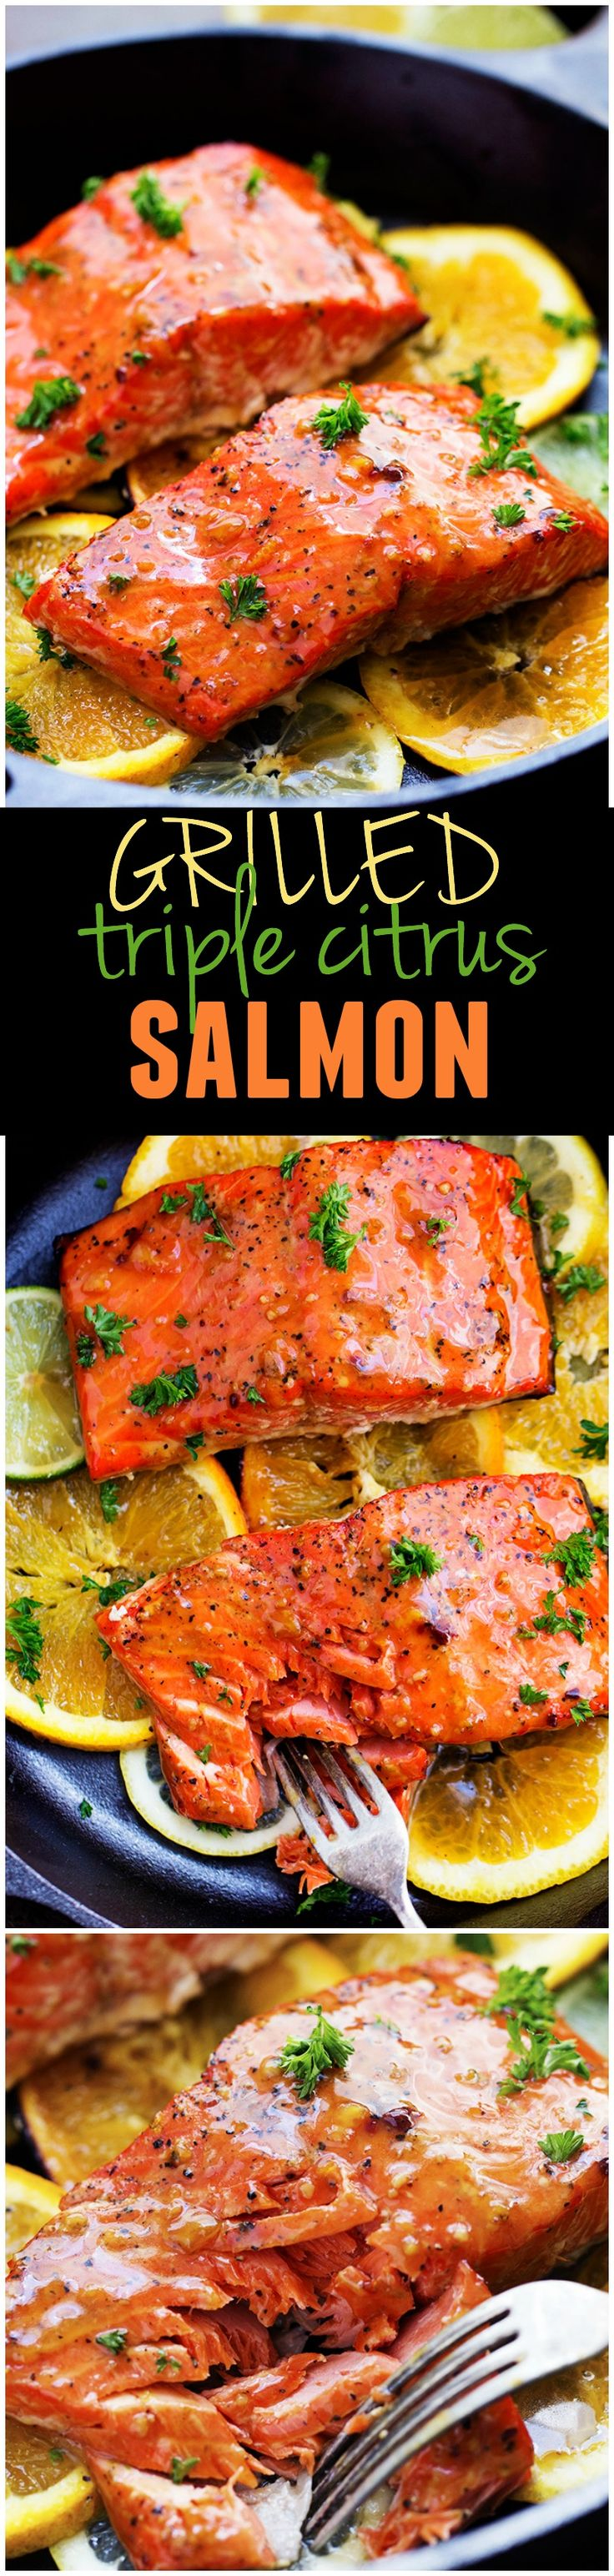 A five star salmon recipe that gets infused with a lemon, lime and orange marinade. It grills to tender and flaky perfection and has the best sweet and tangy flavor!